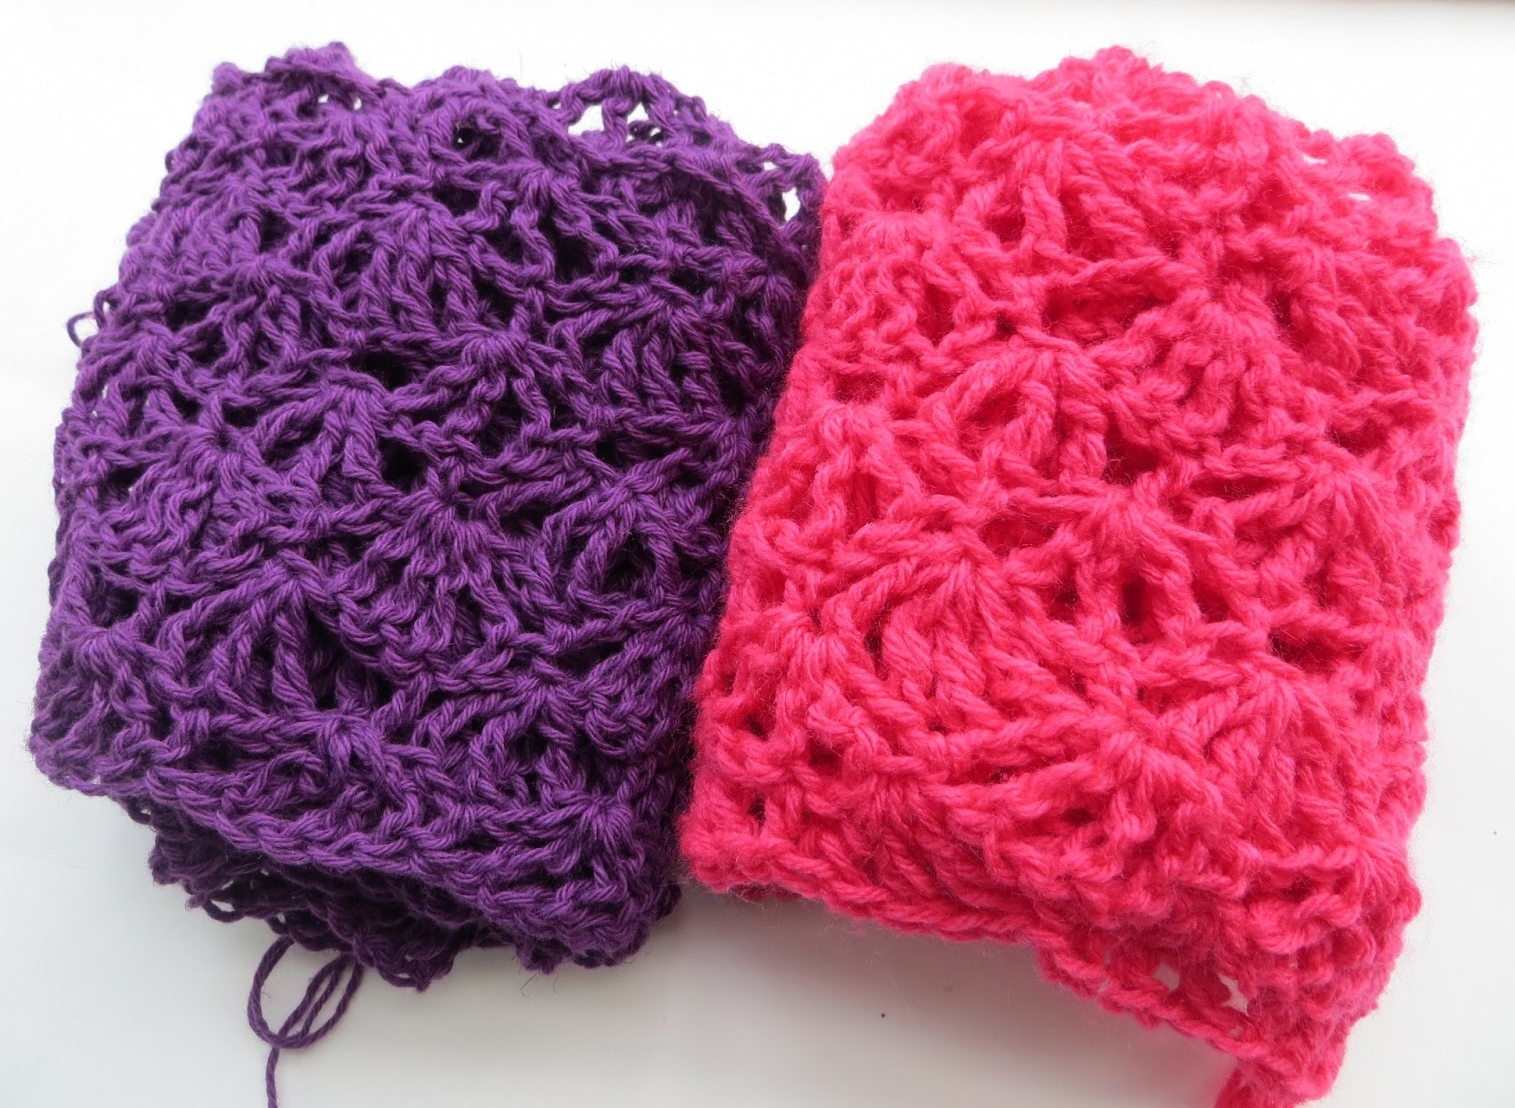 Crochet Patterns : Crochet Dreamz: Alana Lacy Scarf, Free Crochet Pattern